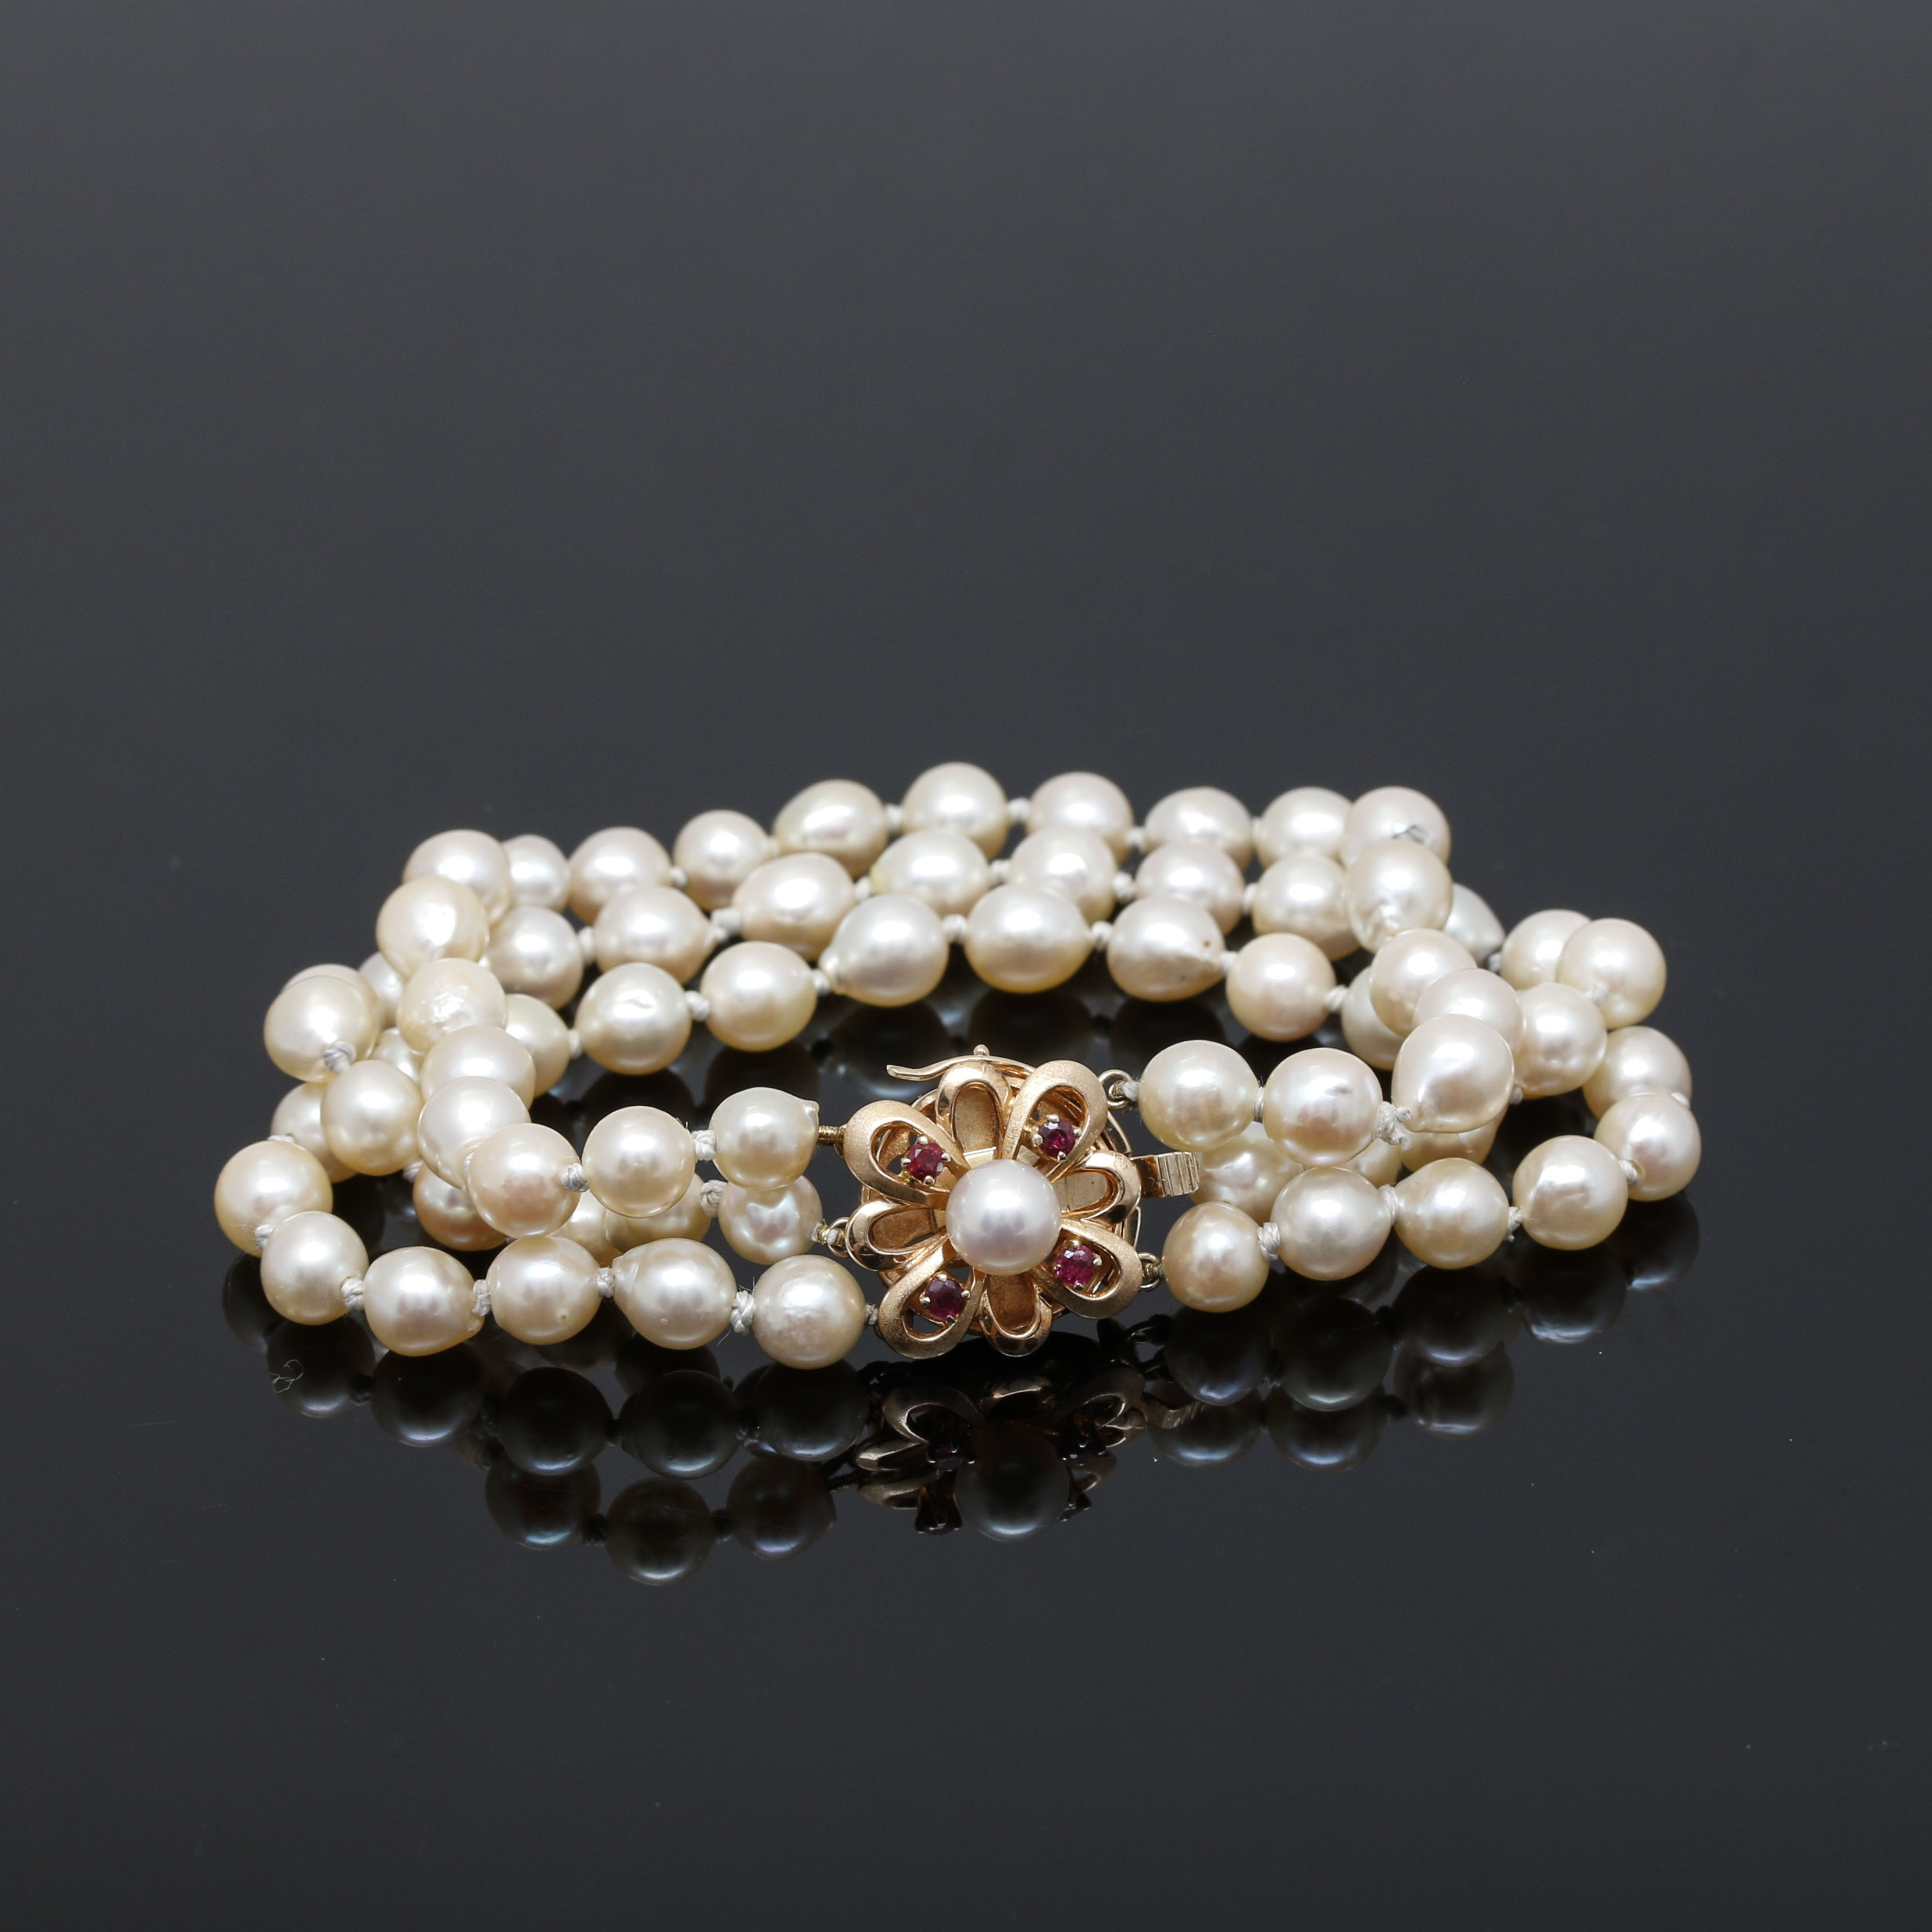 14K Yellow Gold Cultured Pearl and Ruby Bracelet